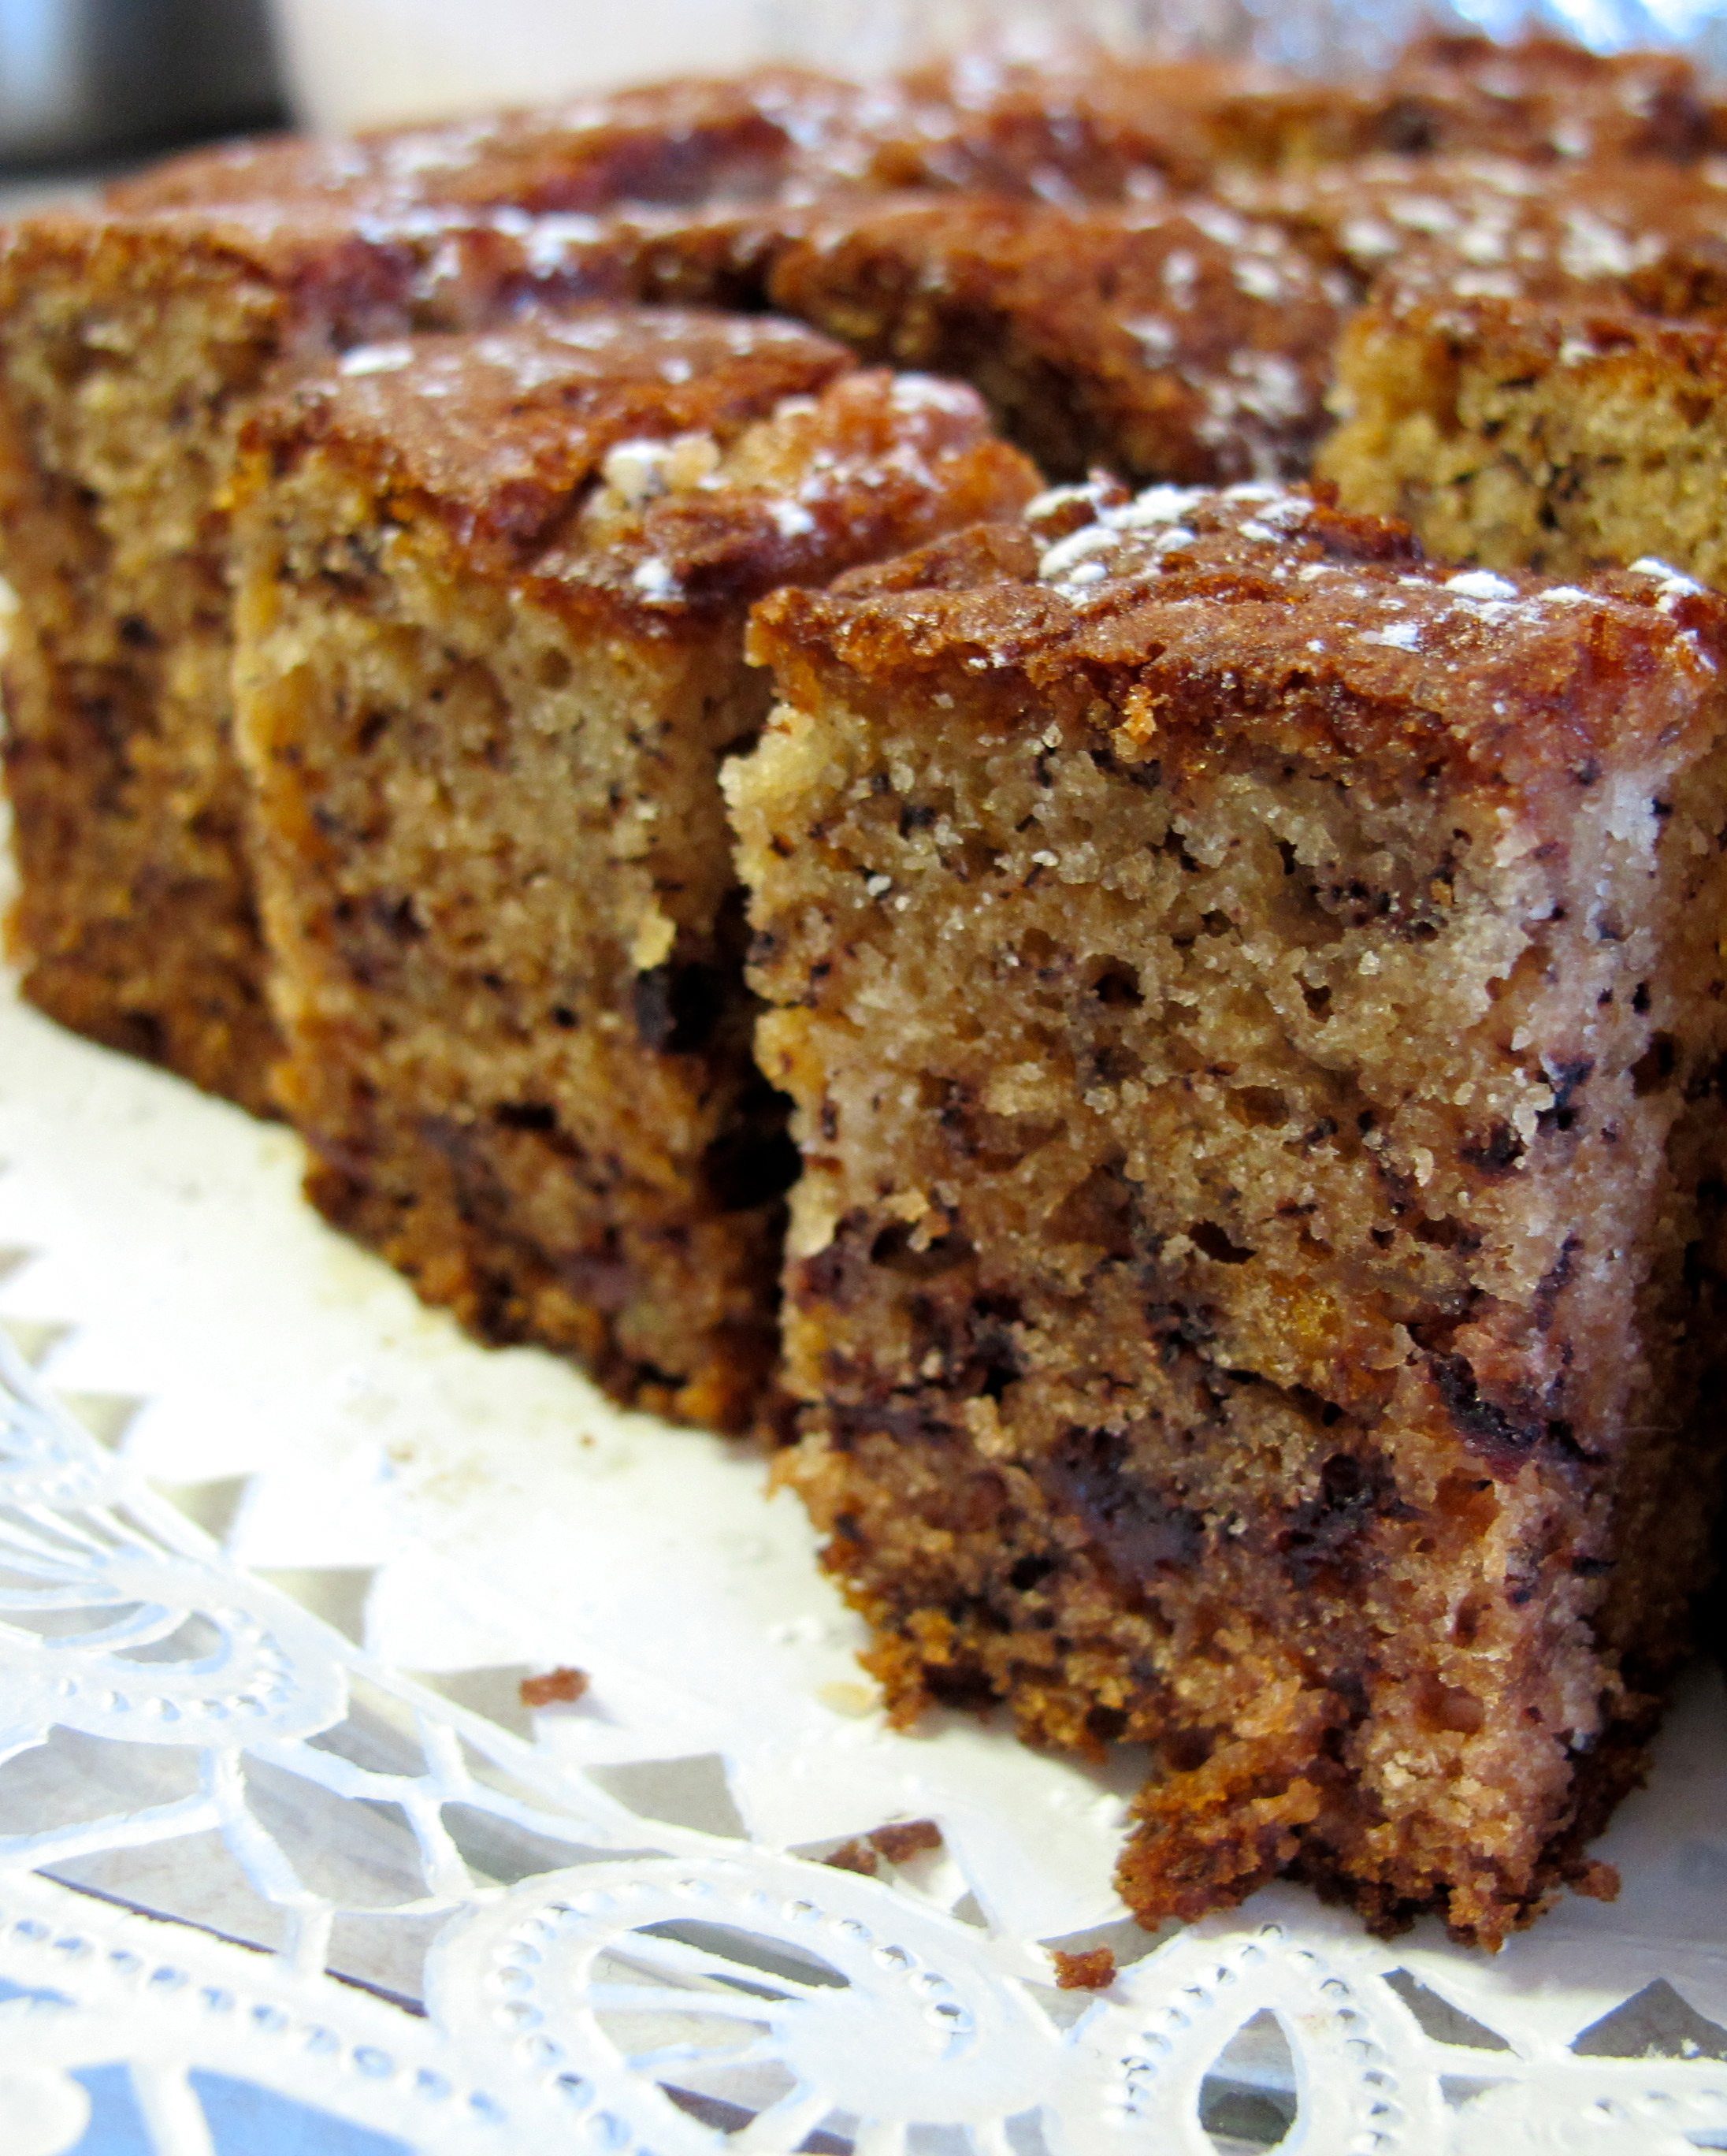 Bake Banana Cake Recipe